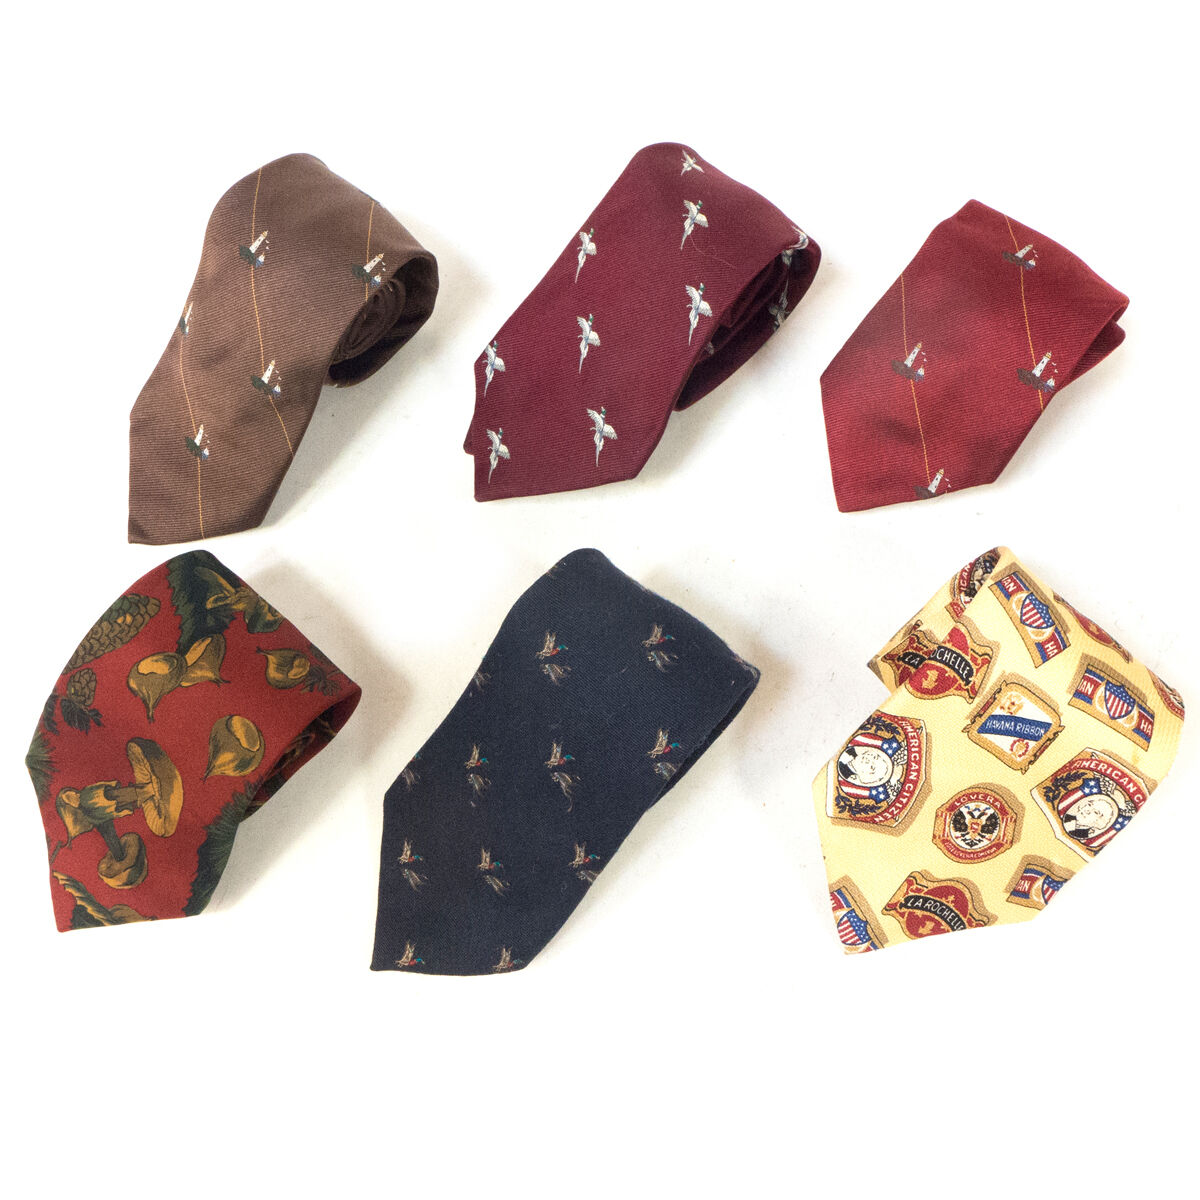 #06 Mixed Lot of 6 Vintage Men's Red, Yellow, Brown, Dark Blue Patterned Ties